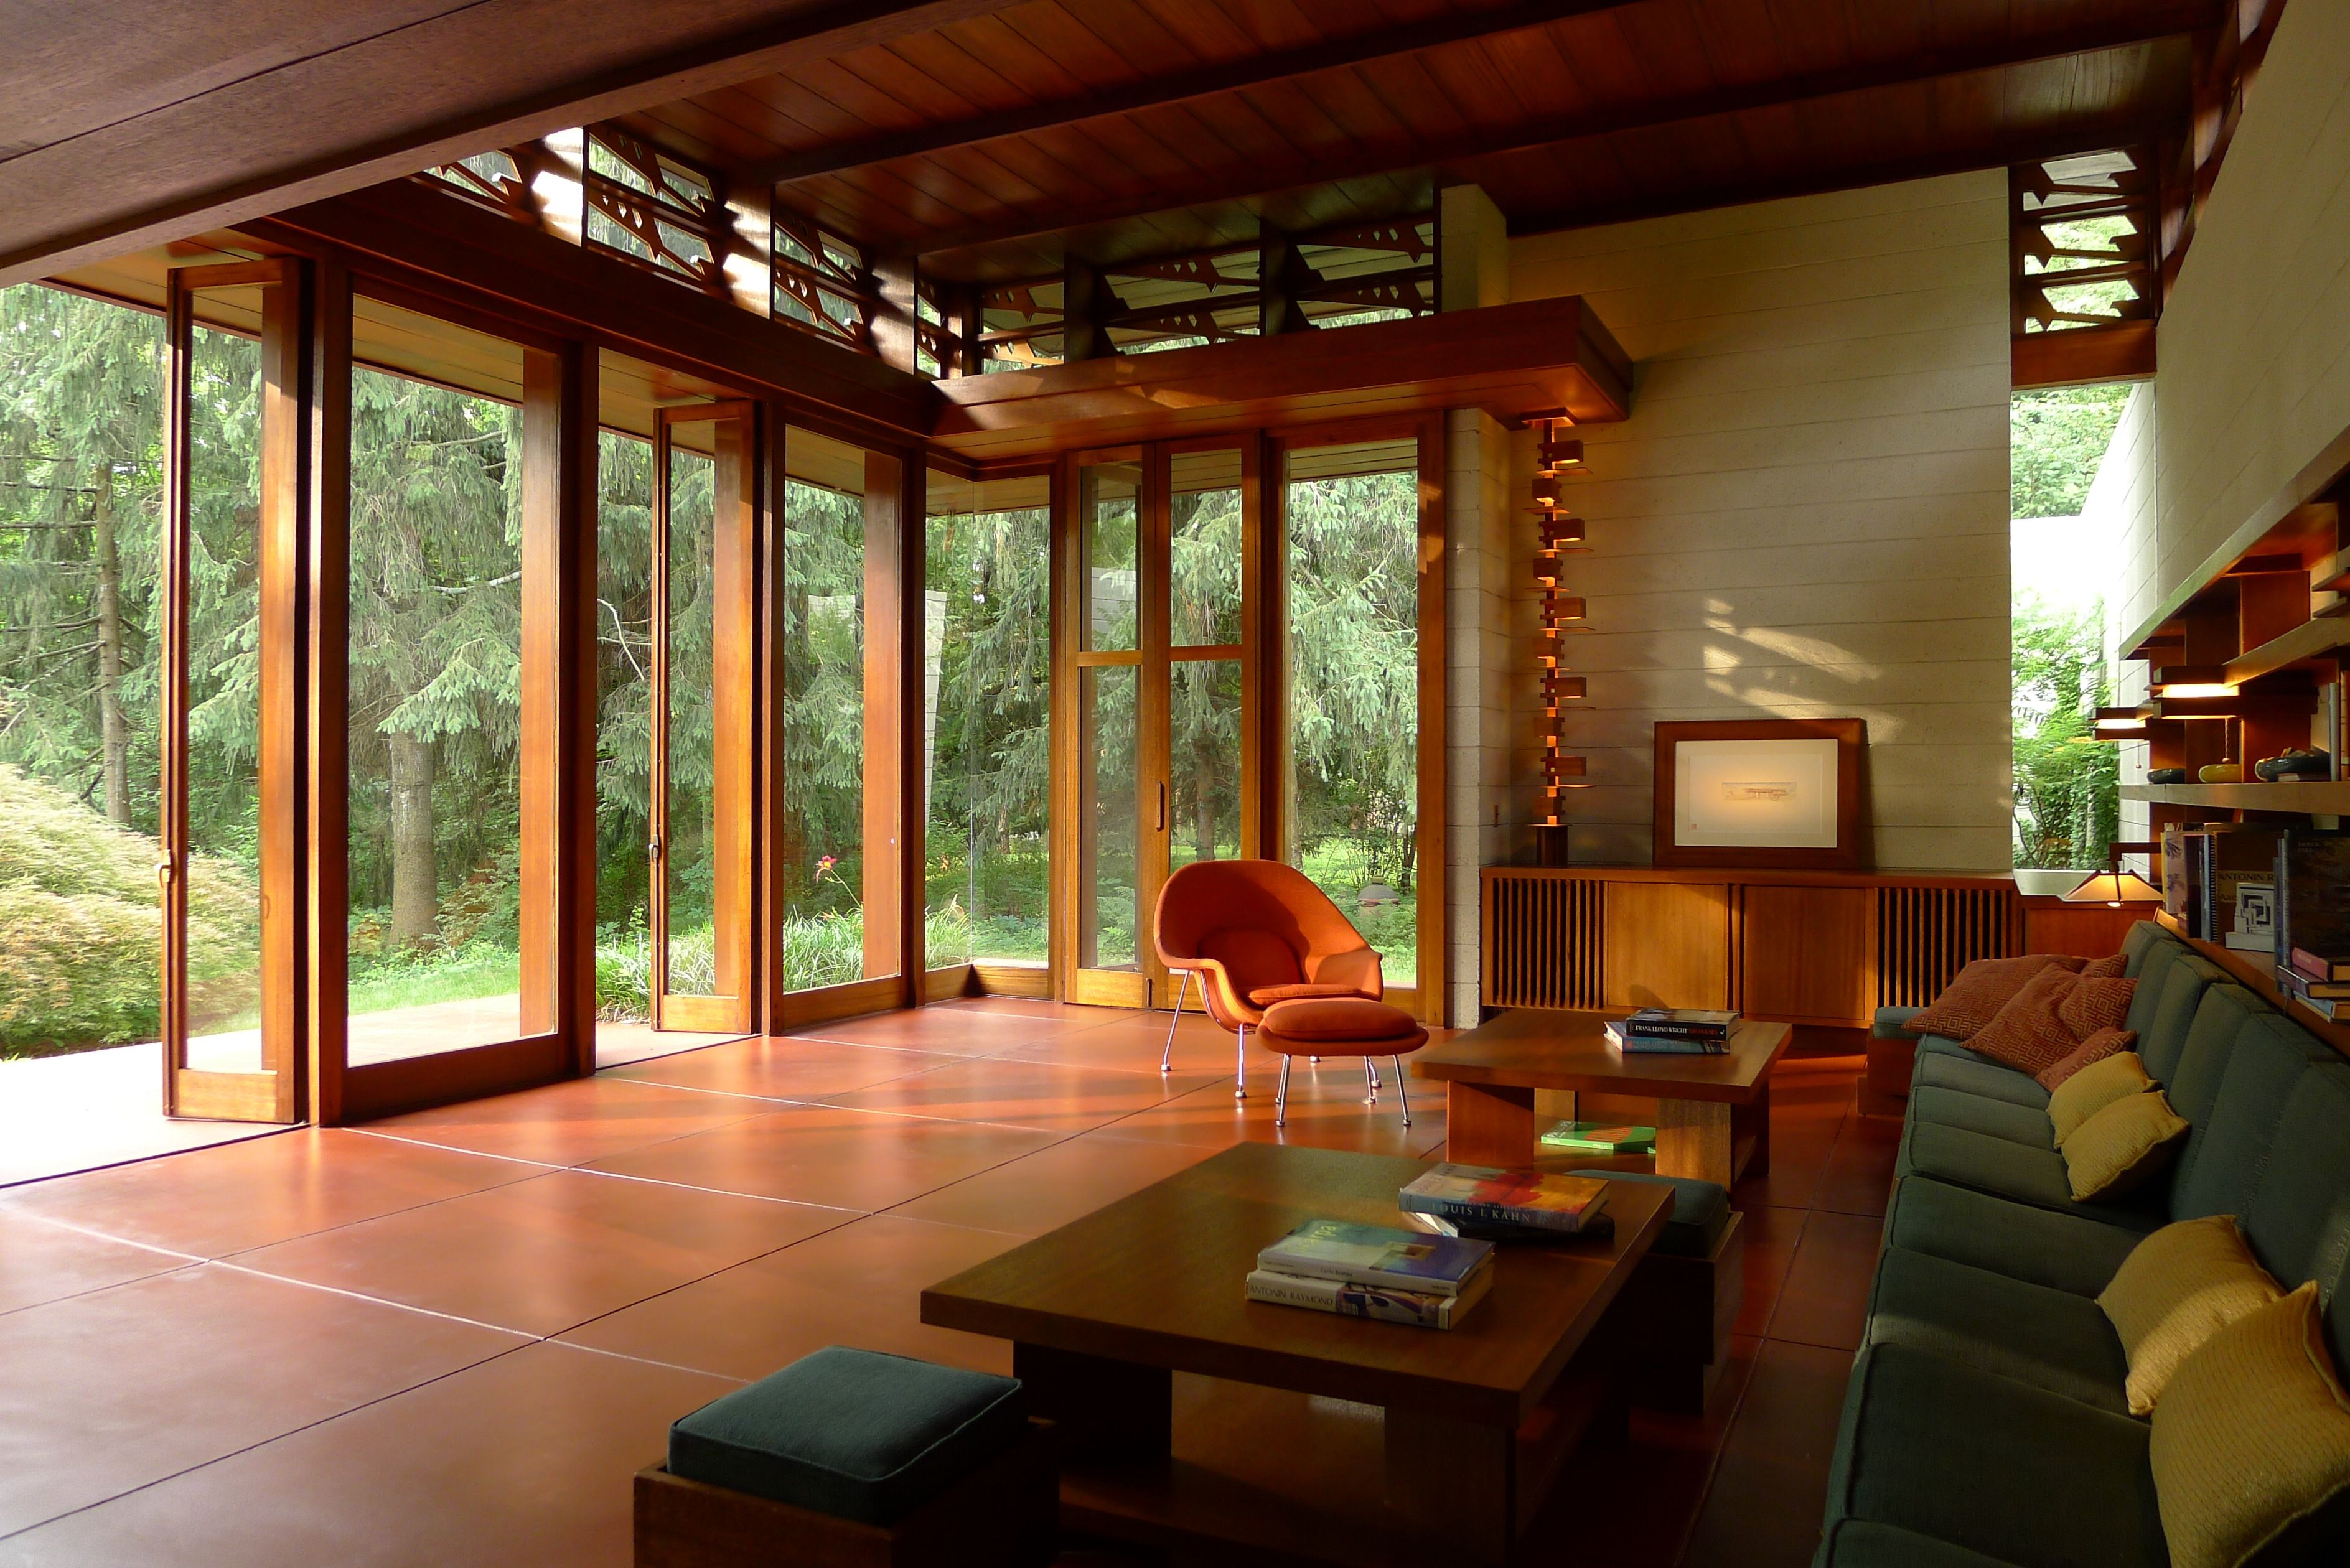 frank lloyd wright usonian house, the bachman wilson house in